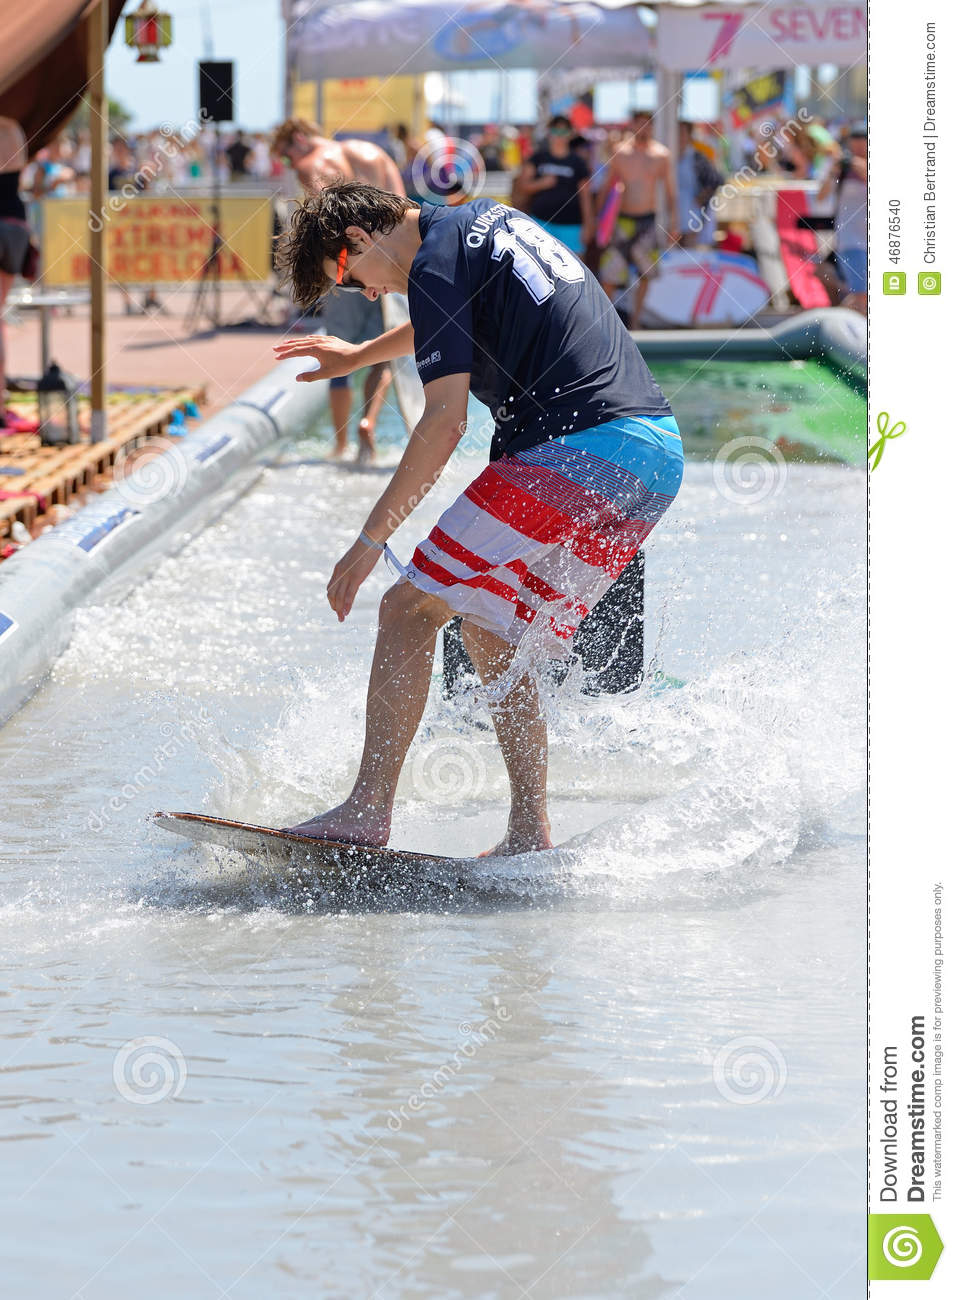 A man surfing in a pool at LKXA Extreme Sports Barcelona Games